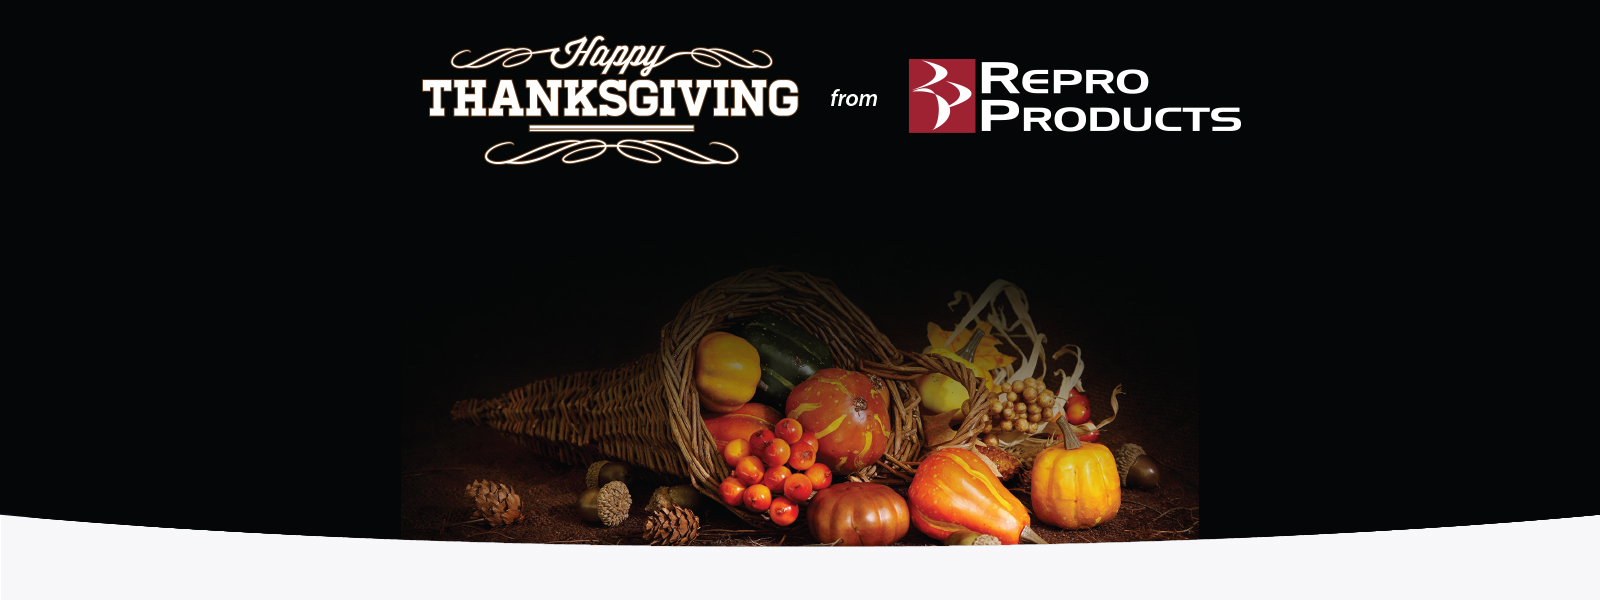 Happy Thanksgiving from Repro Products